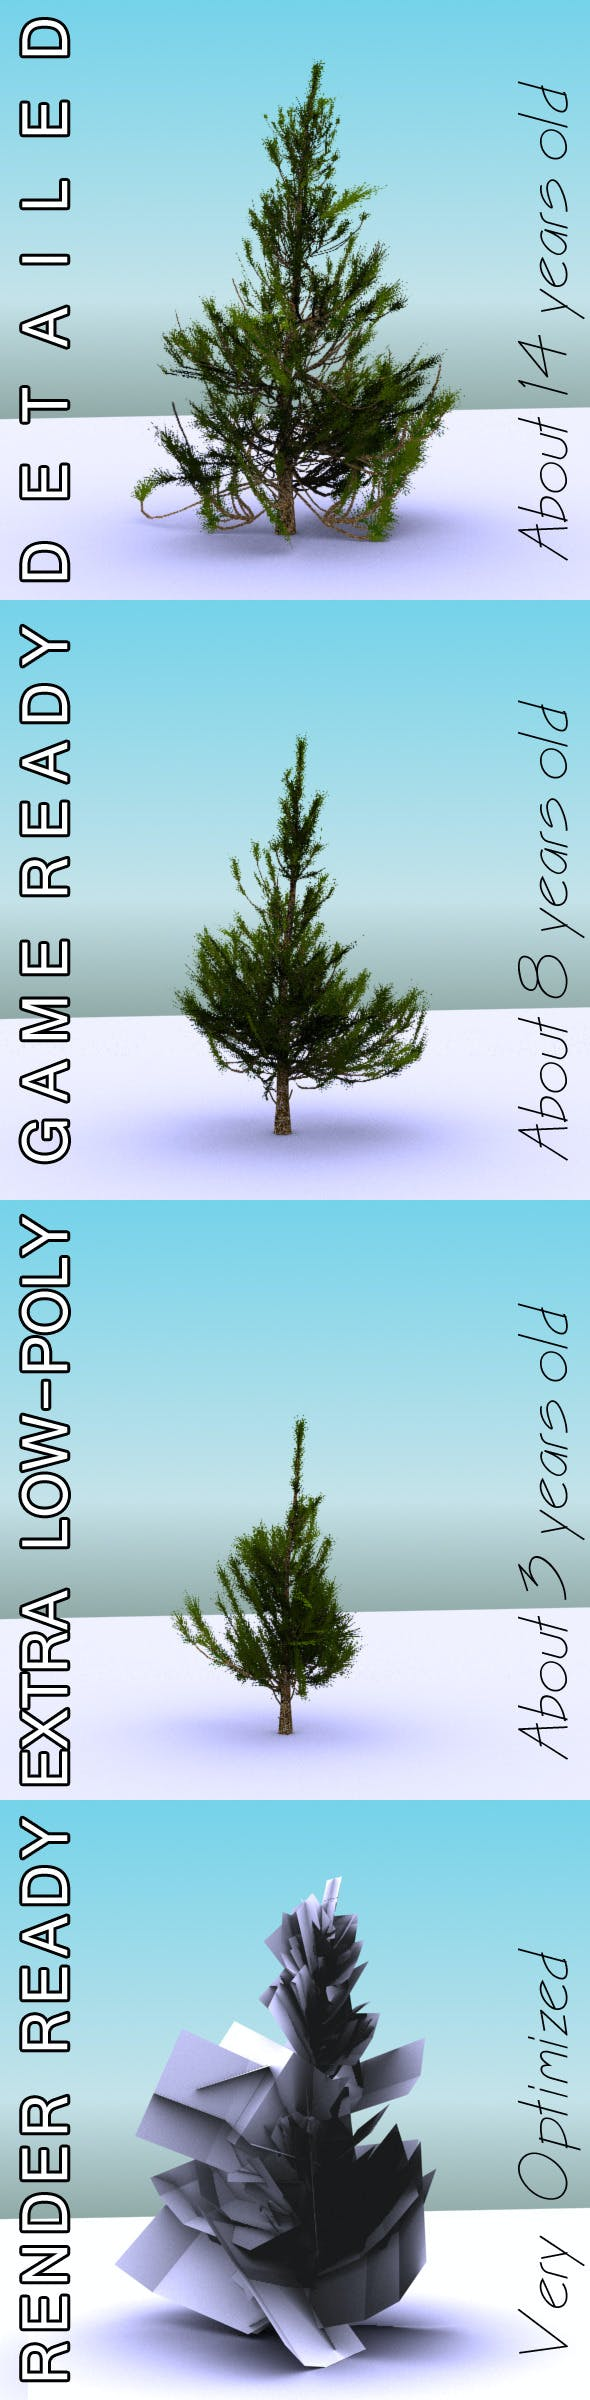 GameReady Low Poly Tree Pack 2 (Aleppo Pine) - 3DOcean Item for Sale